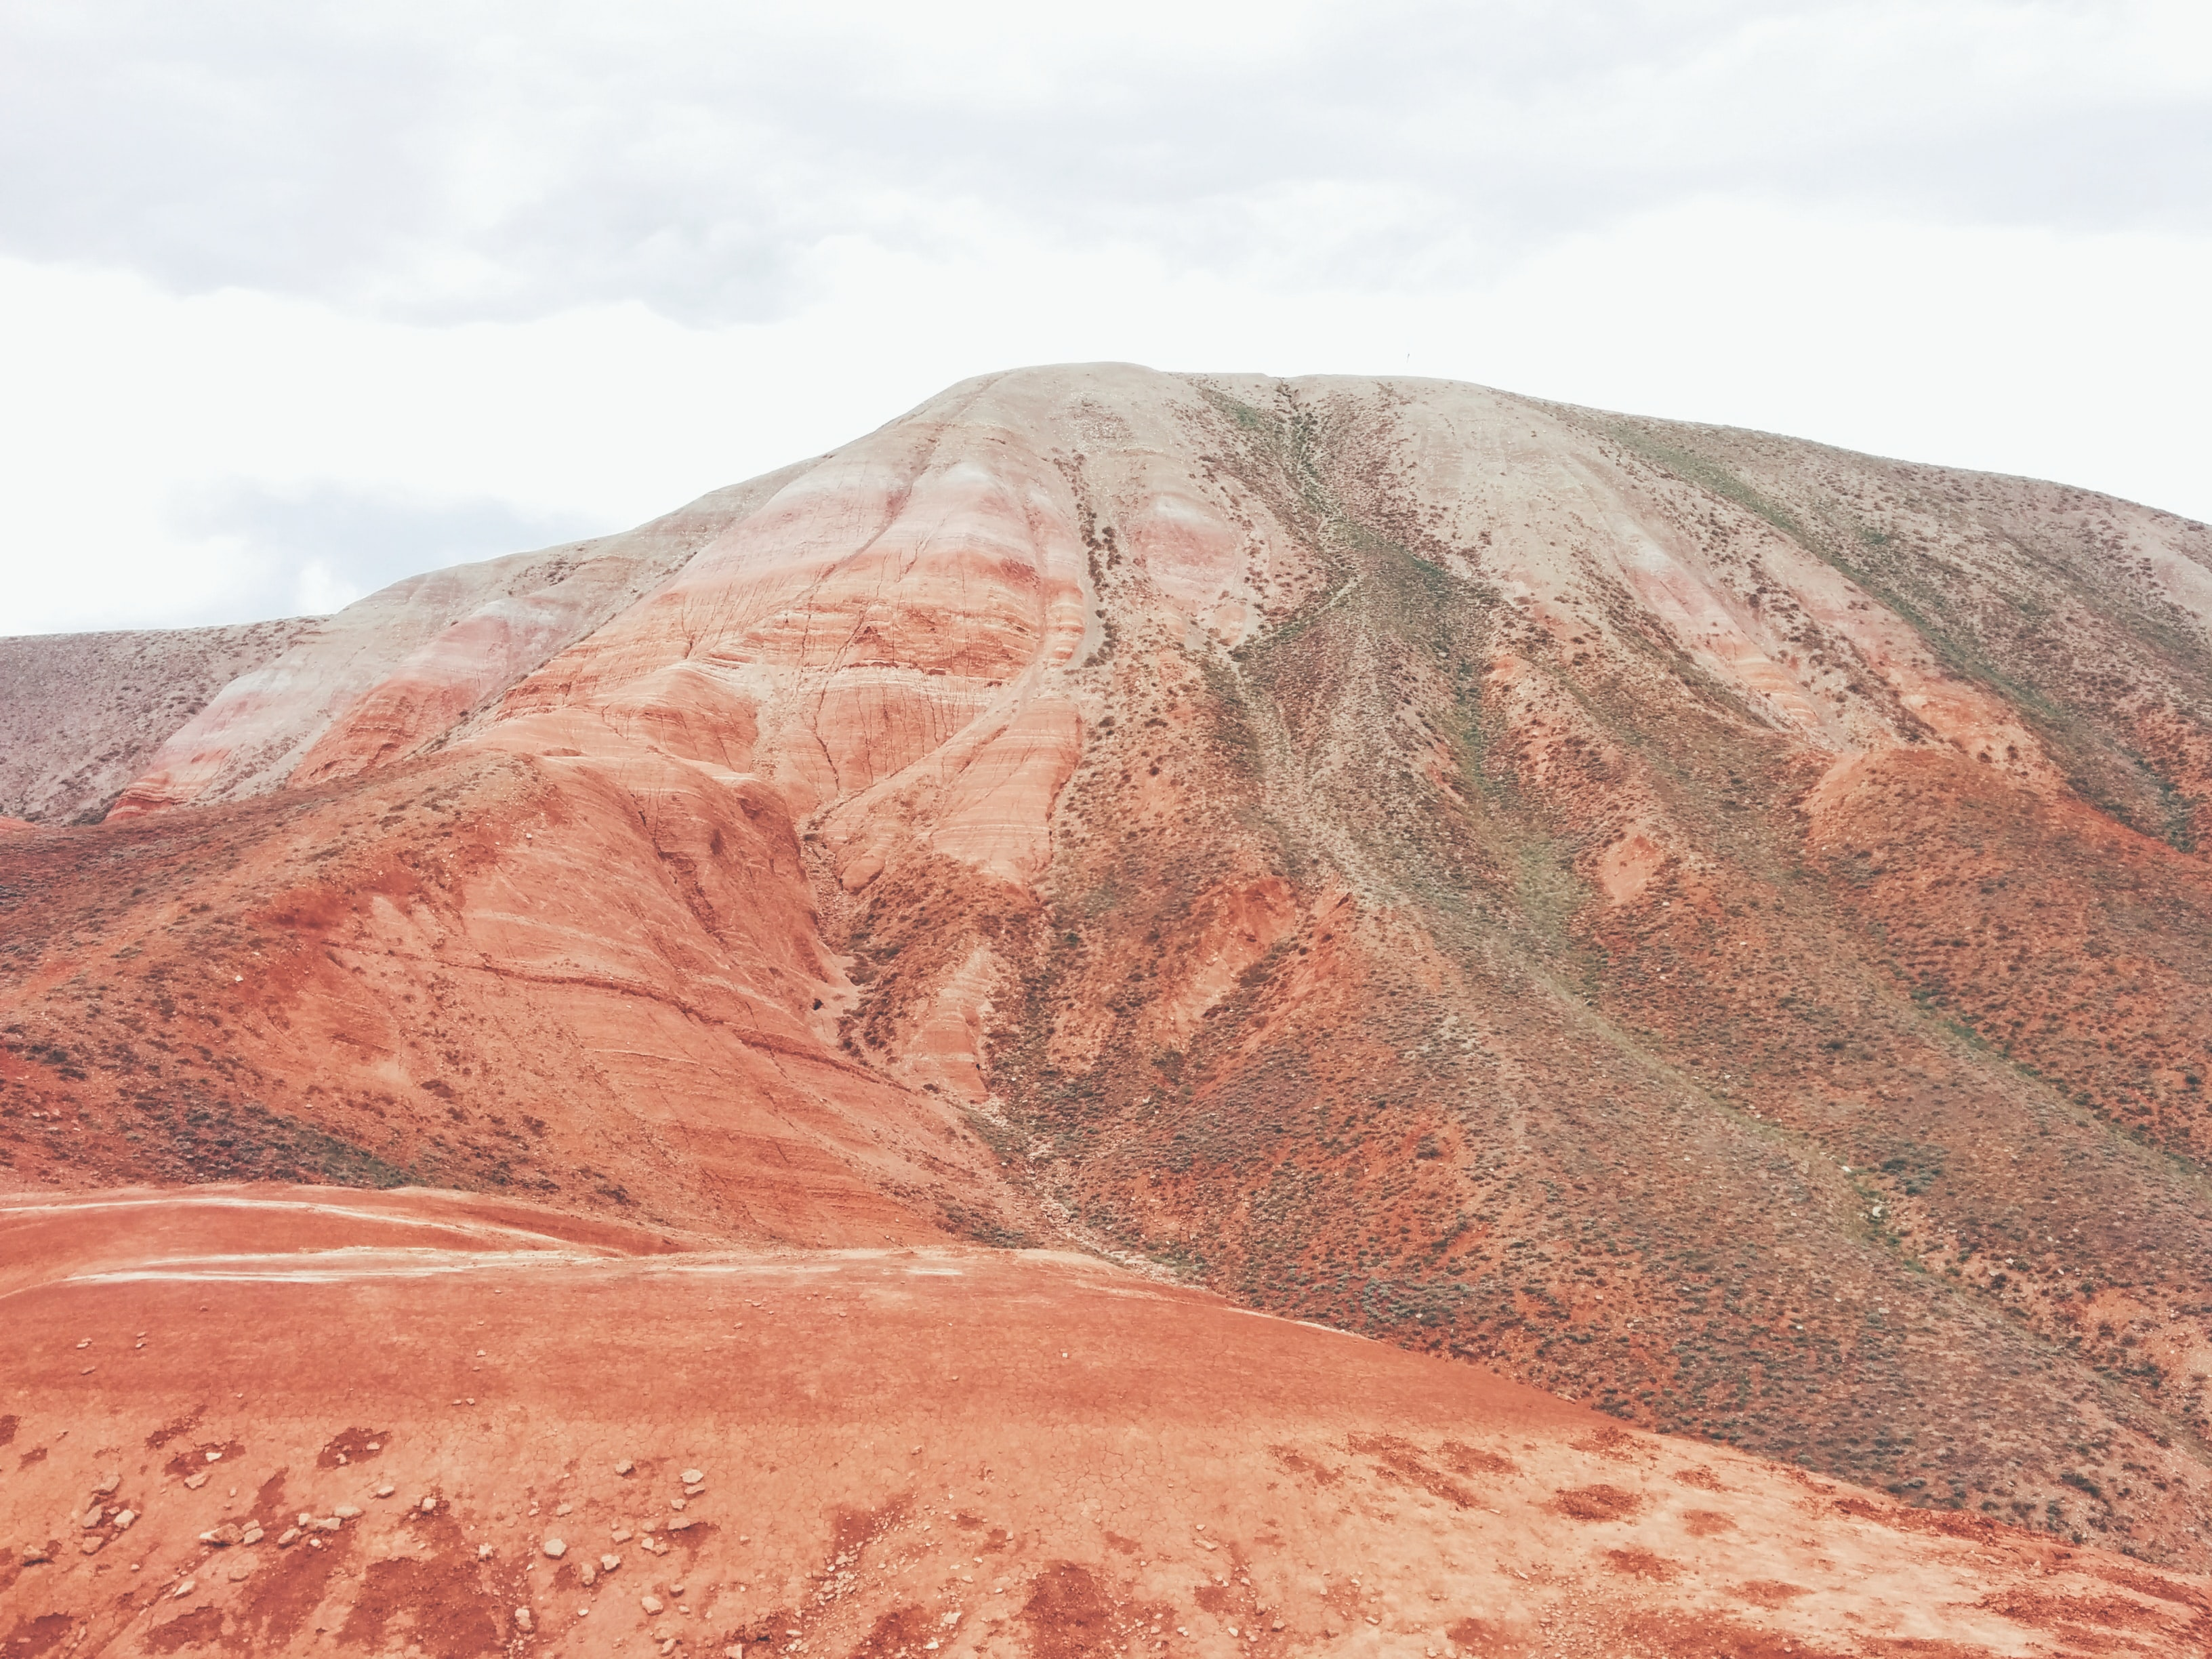 Red sand forms a tall mountain formation in the desert